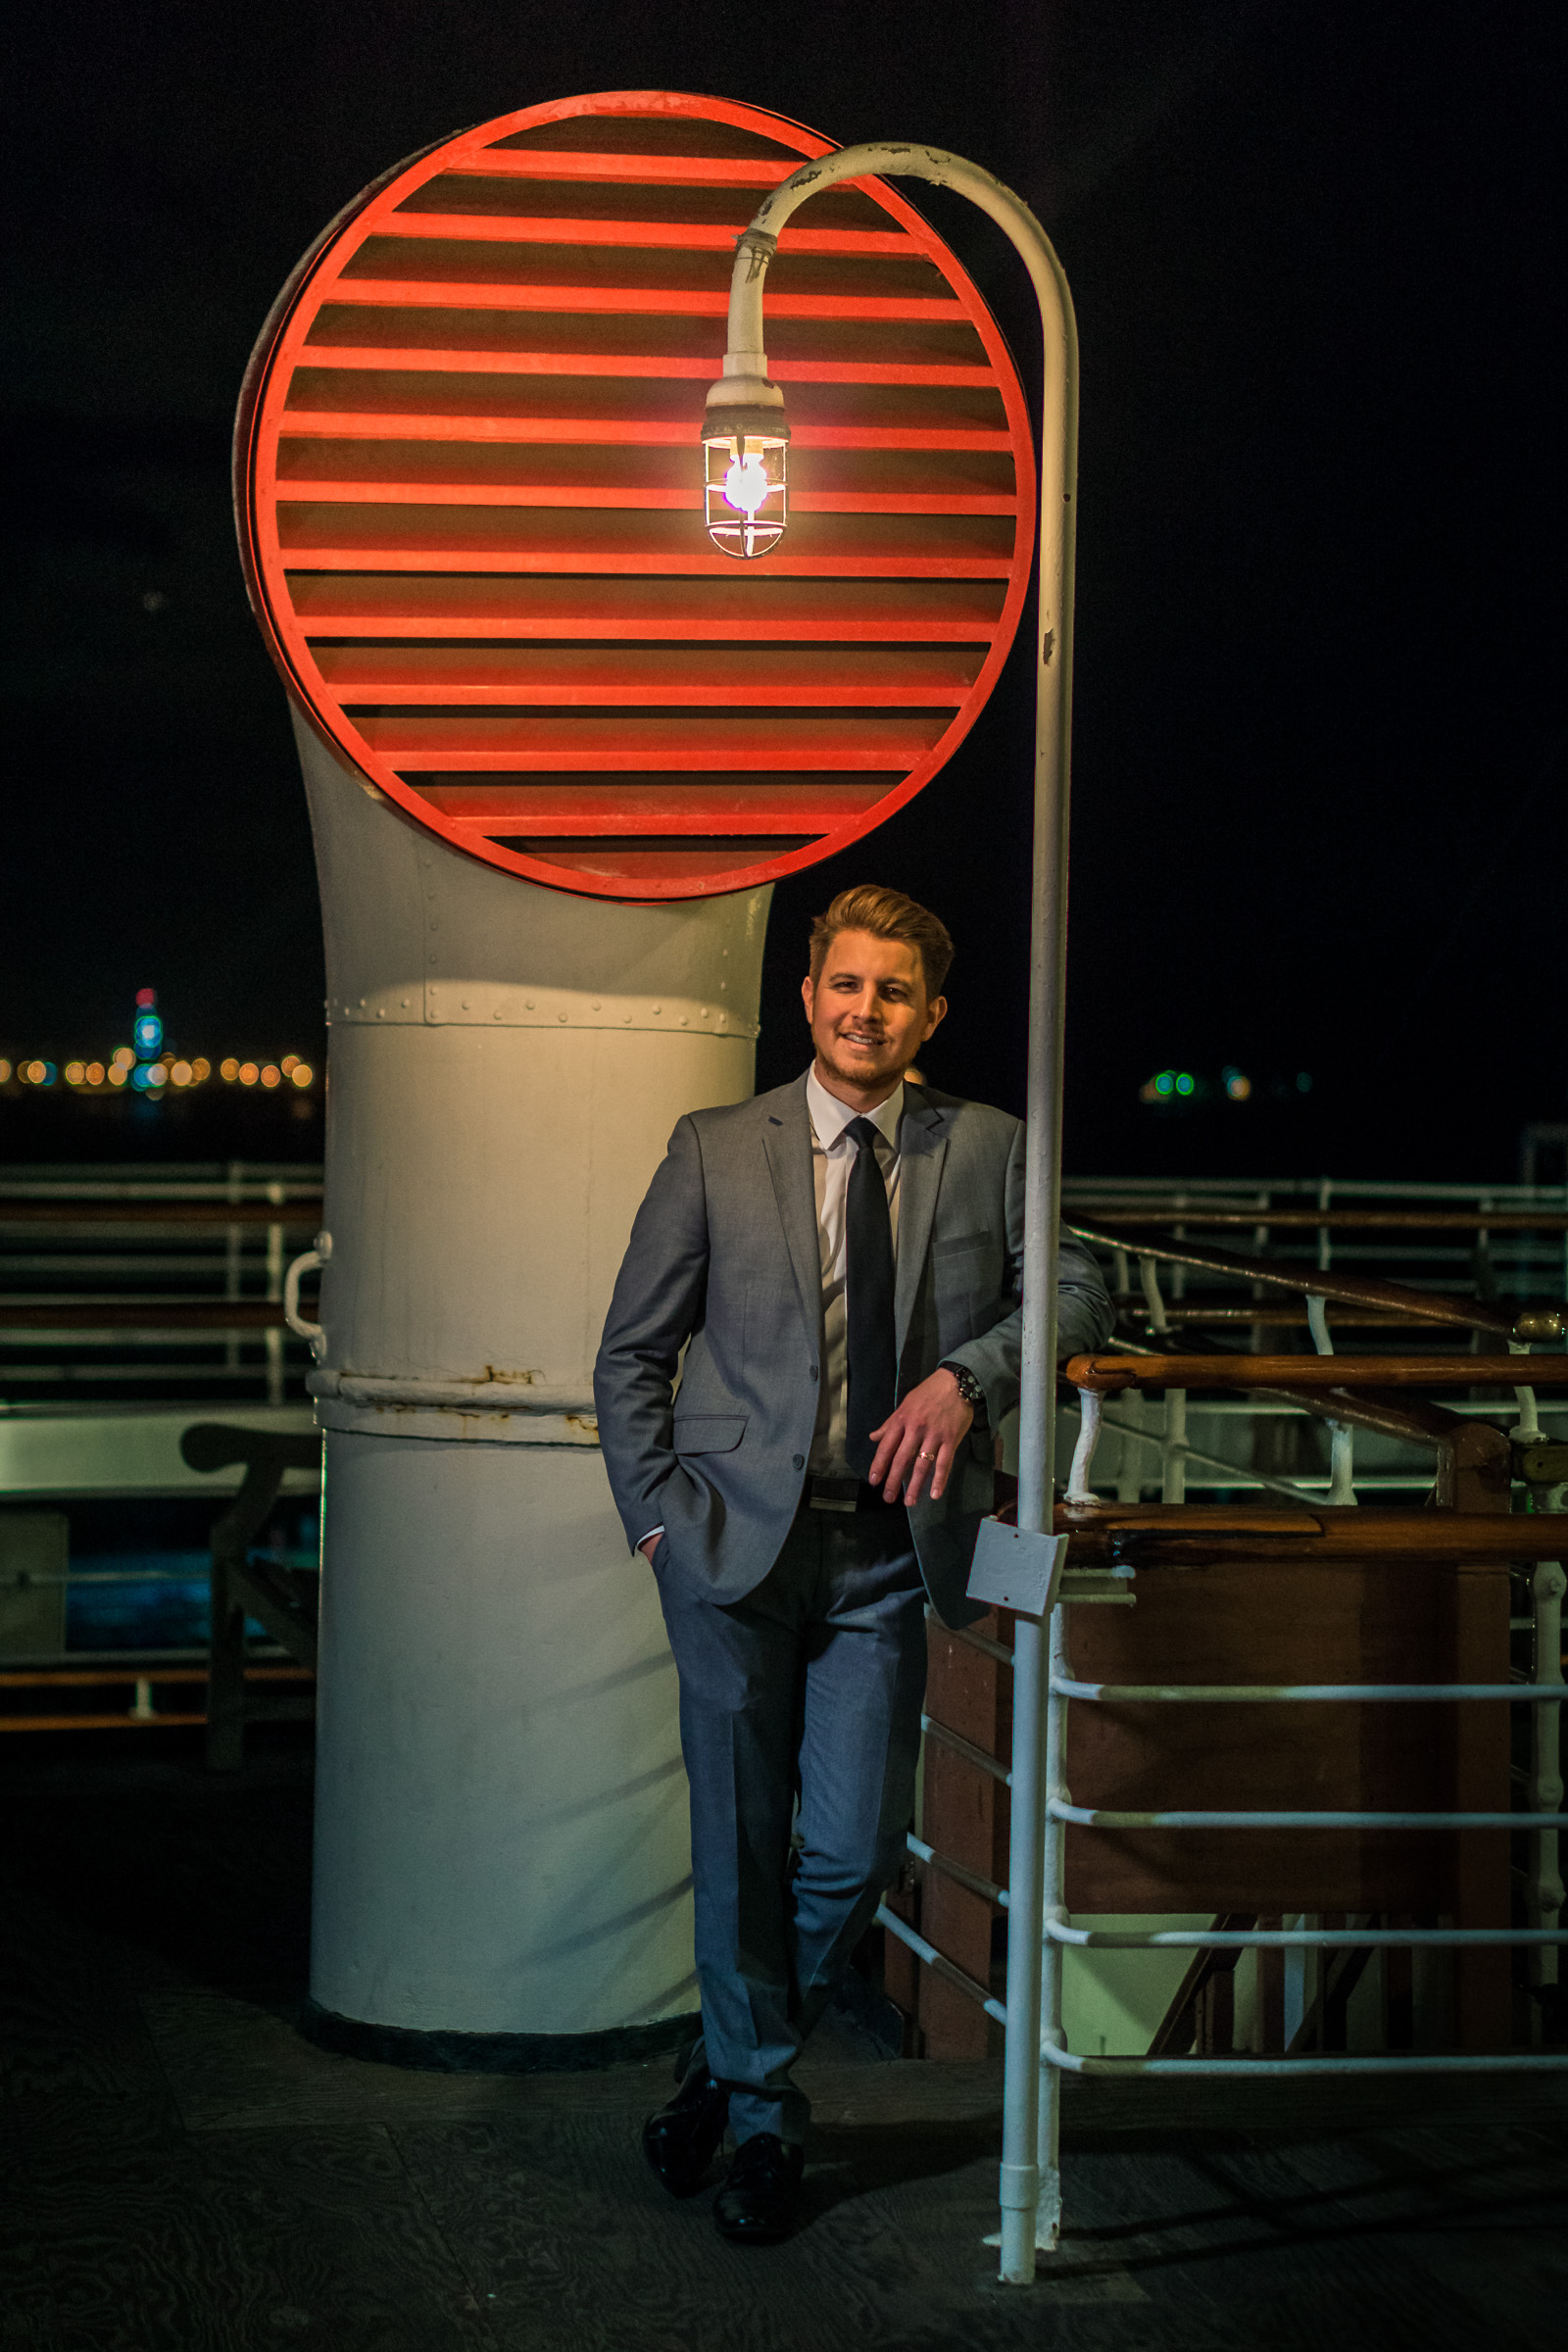 Photo of the groom in a gray suit TakePhoto shoot on the Queen Mary during a couples photoshoto